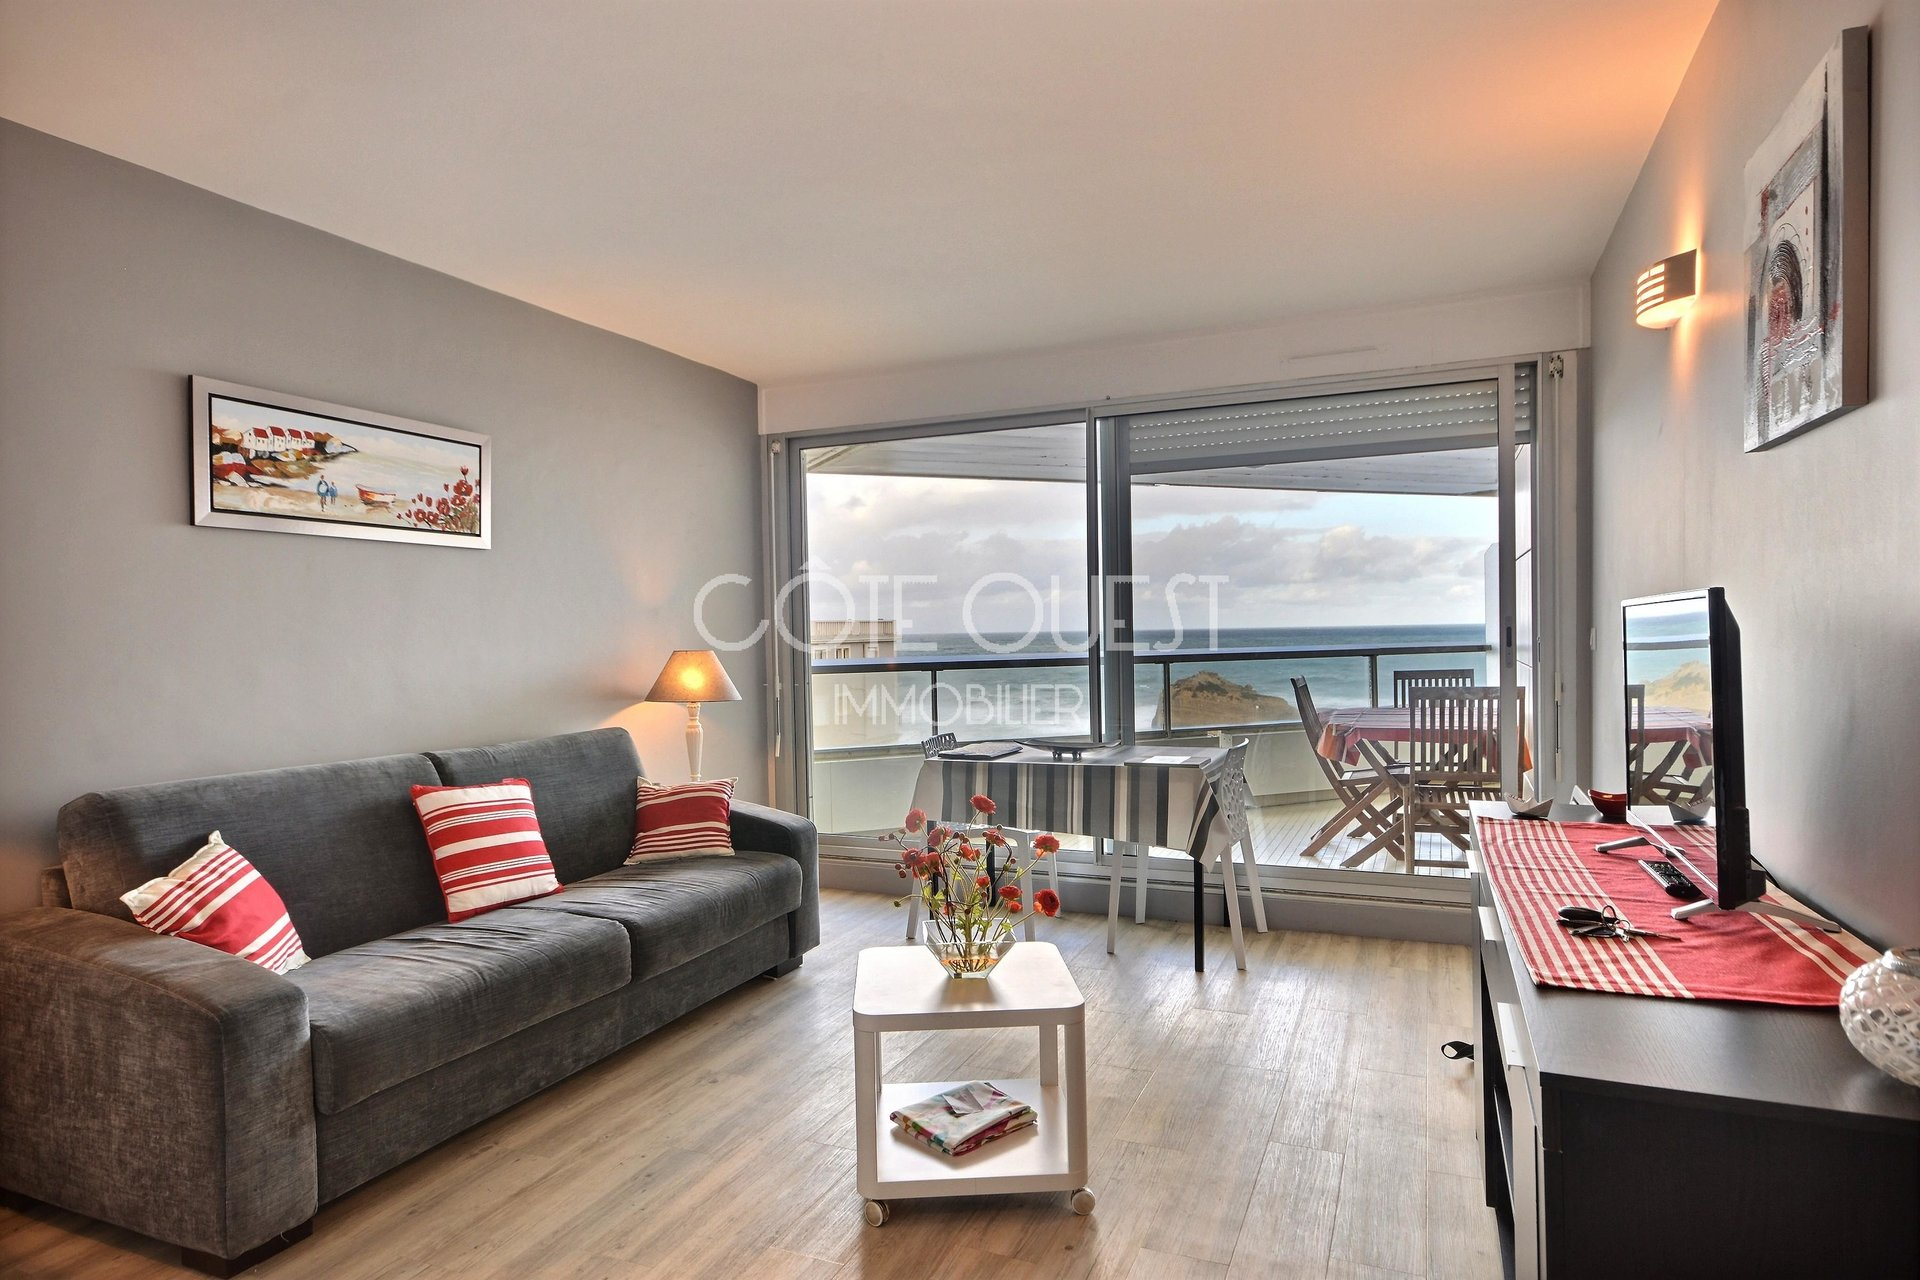 BIARRITZ, MIRAMAR NEIGHBOURHOOD.  A STUDIO APARTMENT WITH A TERRACE FACING THE OCEAN